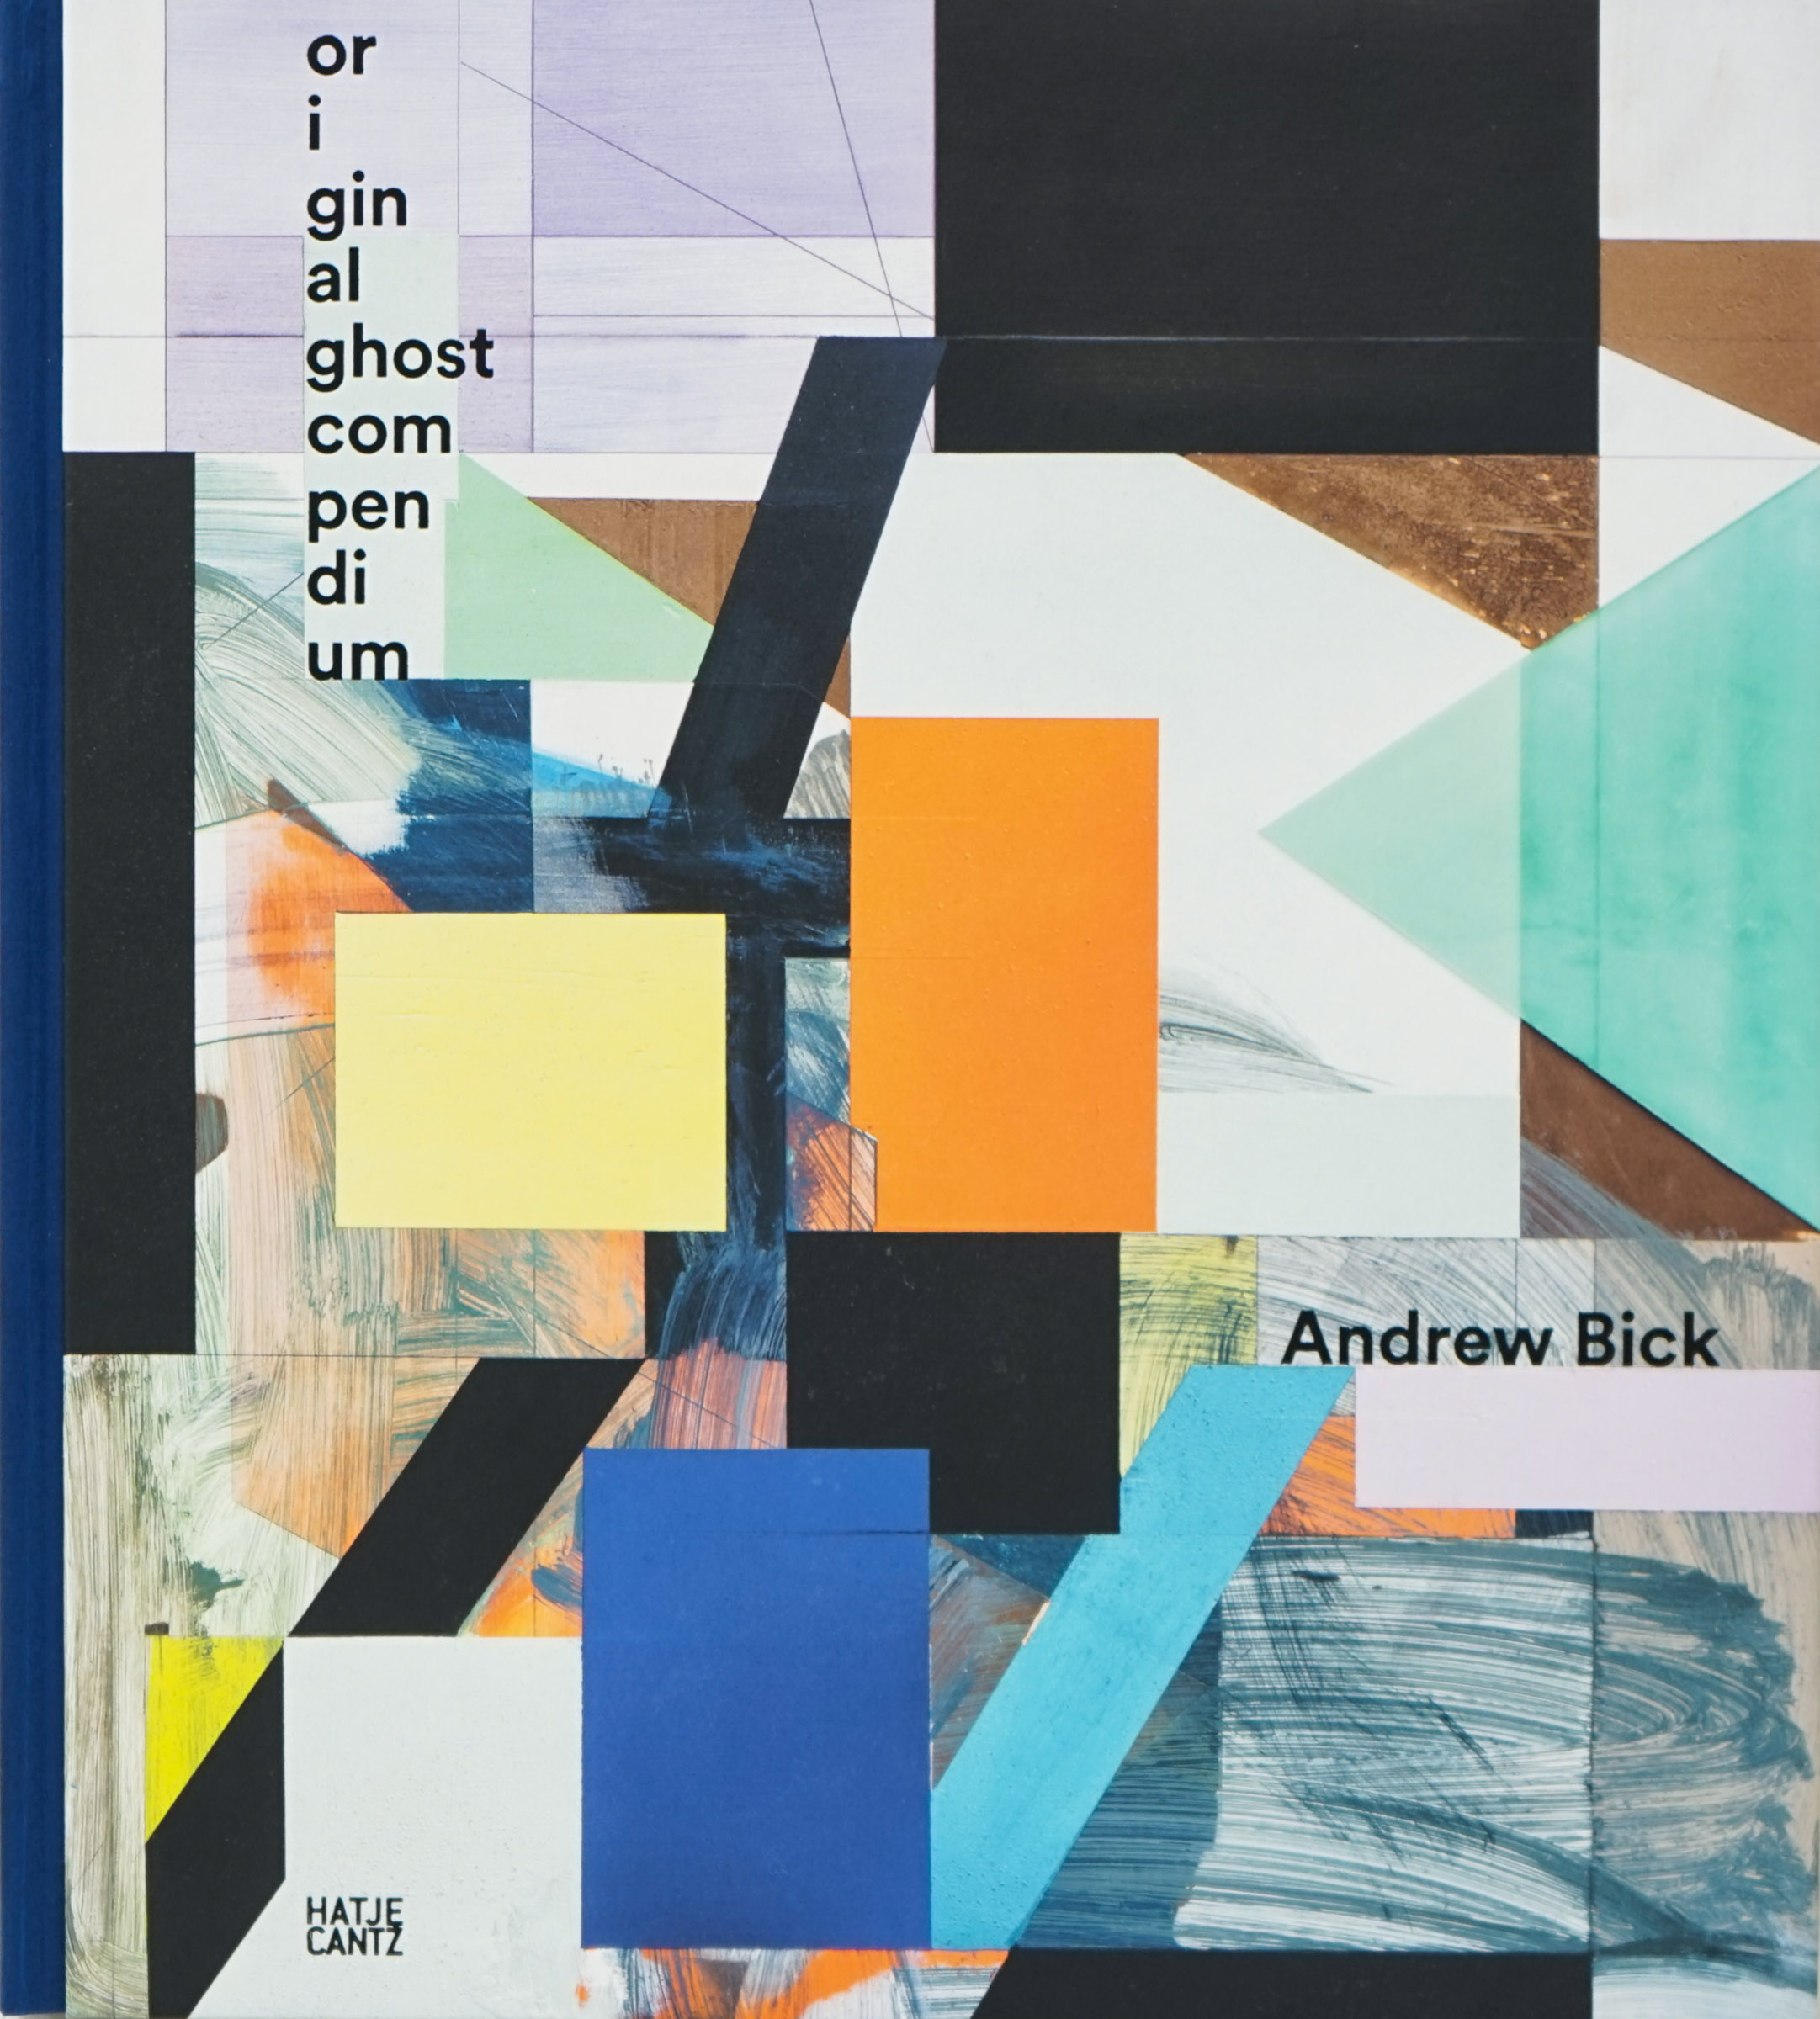 Publication by Andrew Bick